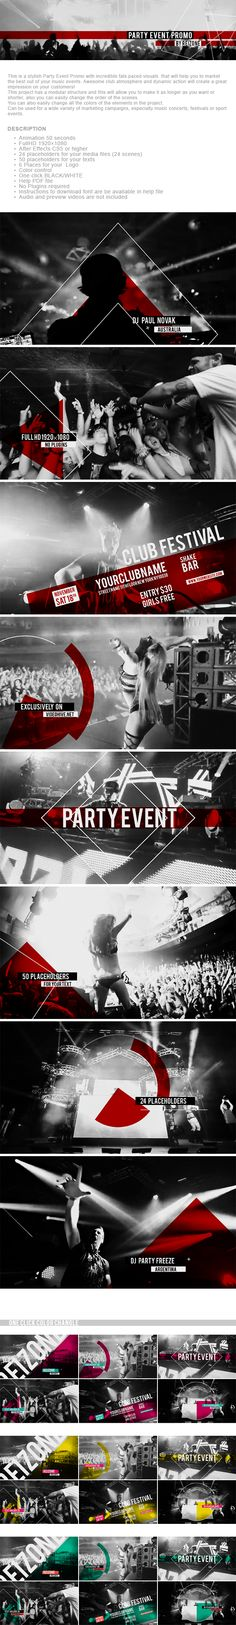 After Effects Project Files - Party Event Promo   VideoHive